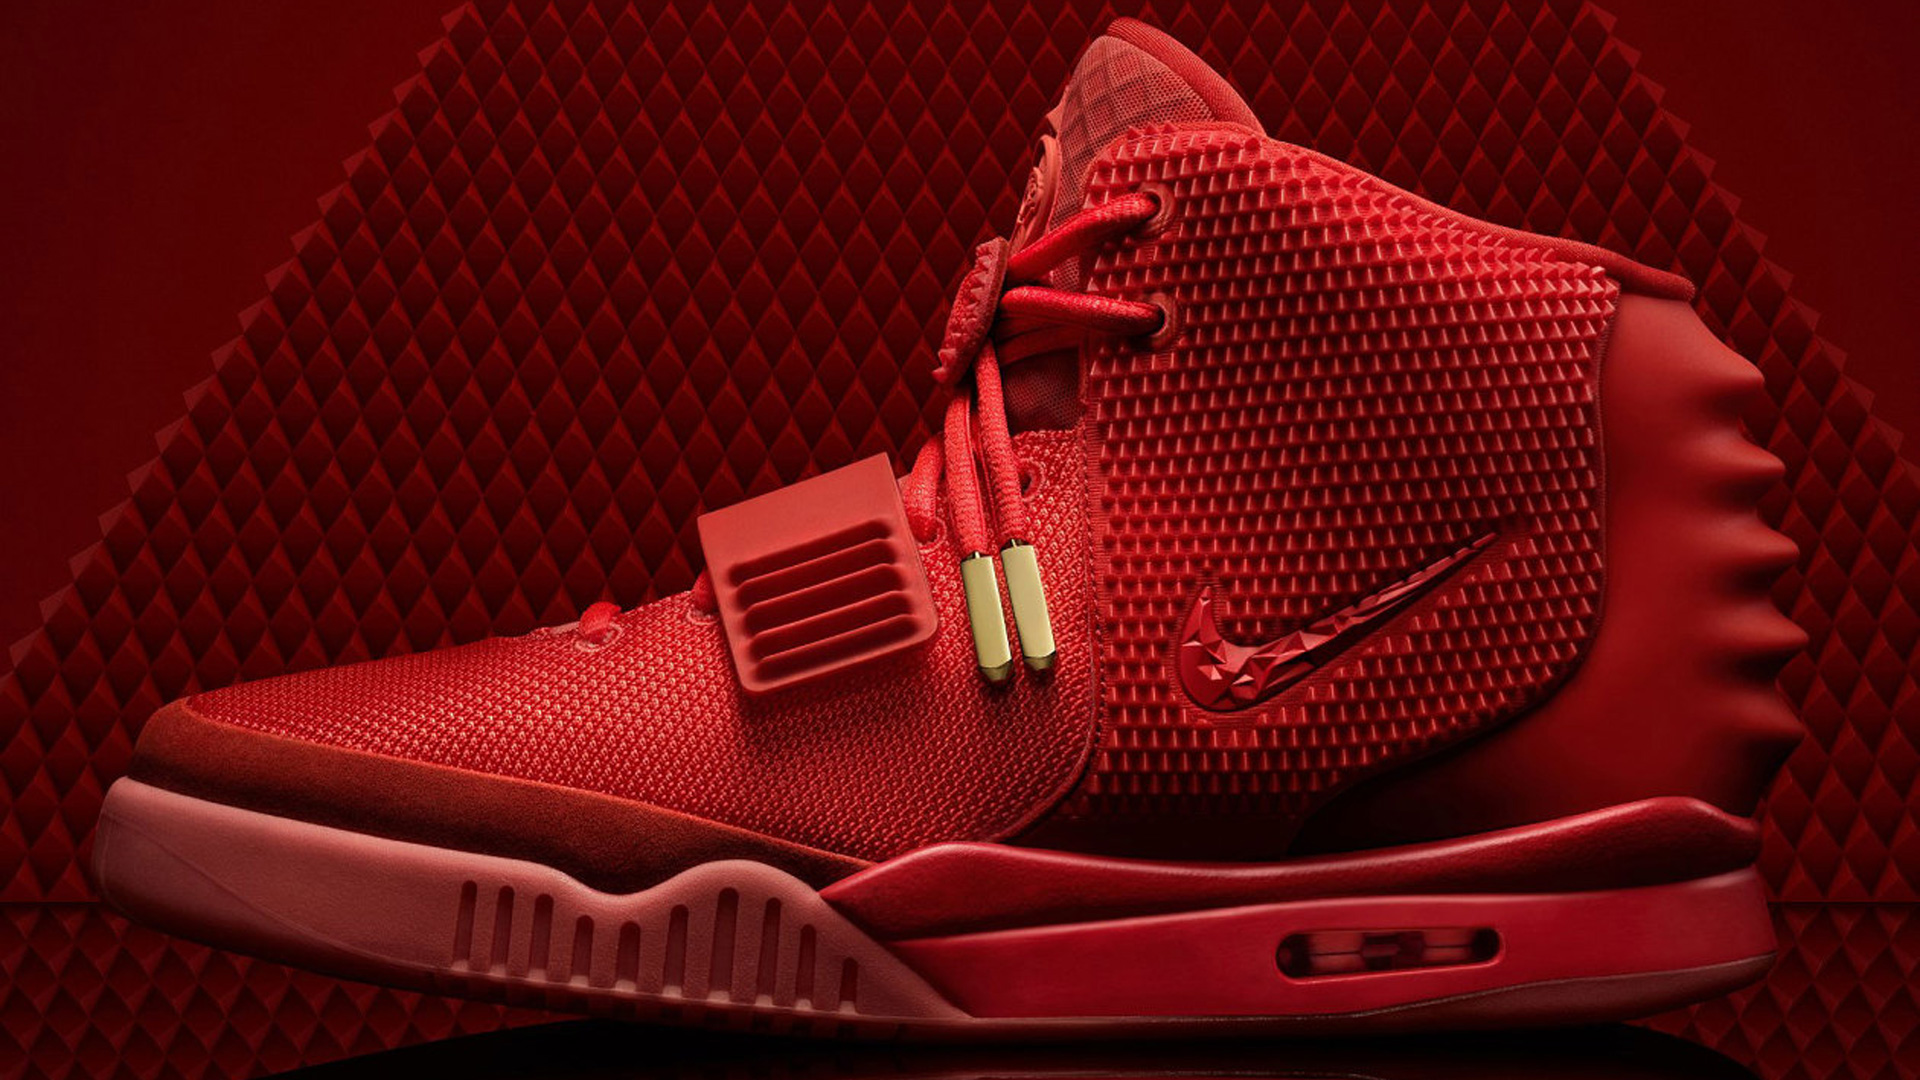 Nike Air Yeezy 2 Red October sofort Ausverkauft